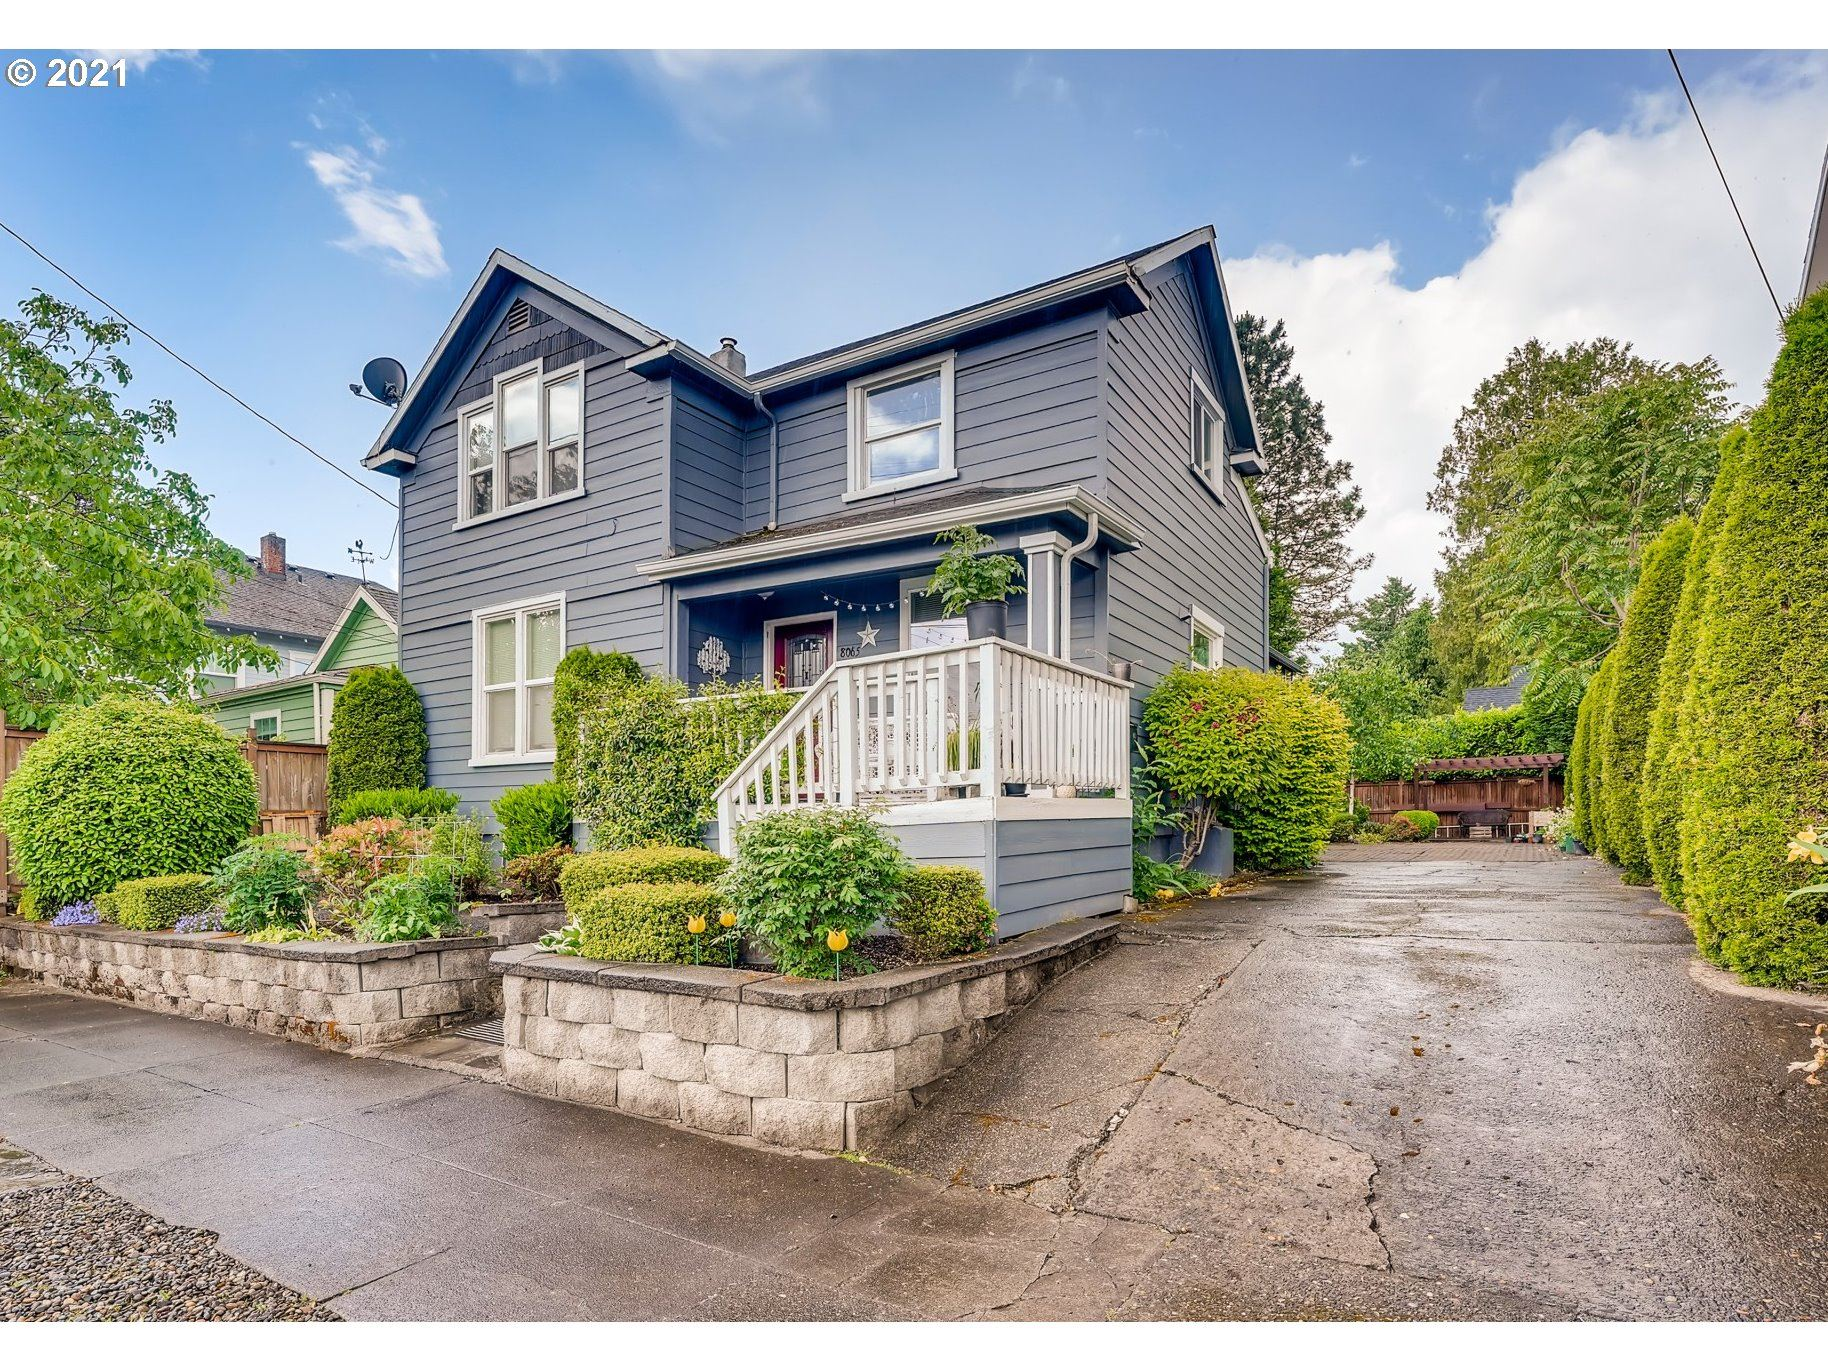 8065 SE 9TH AVE, Portland, OR 97202 - MLS#: 21036111